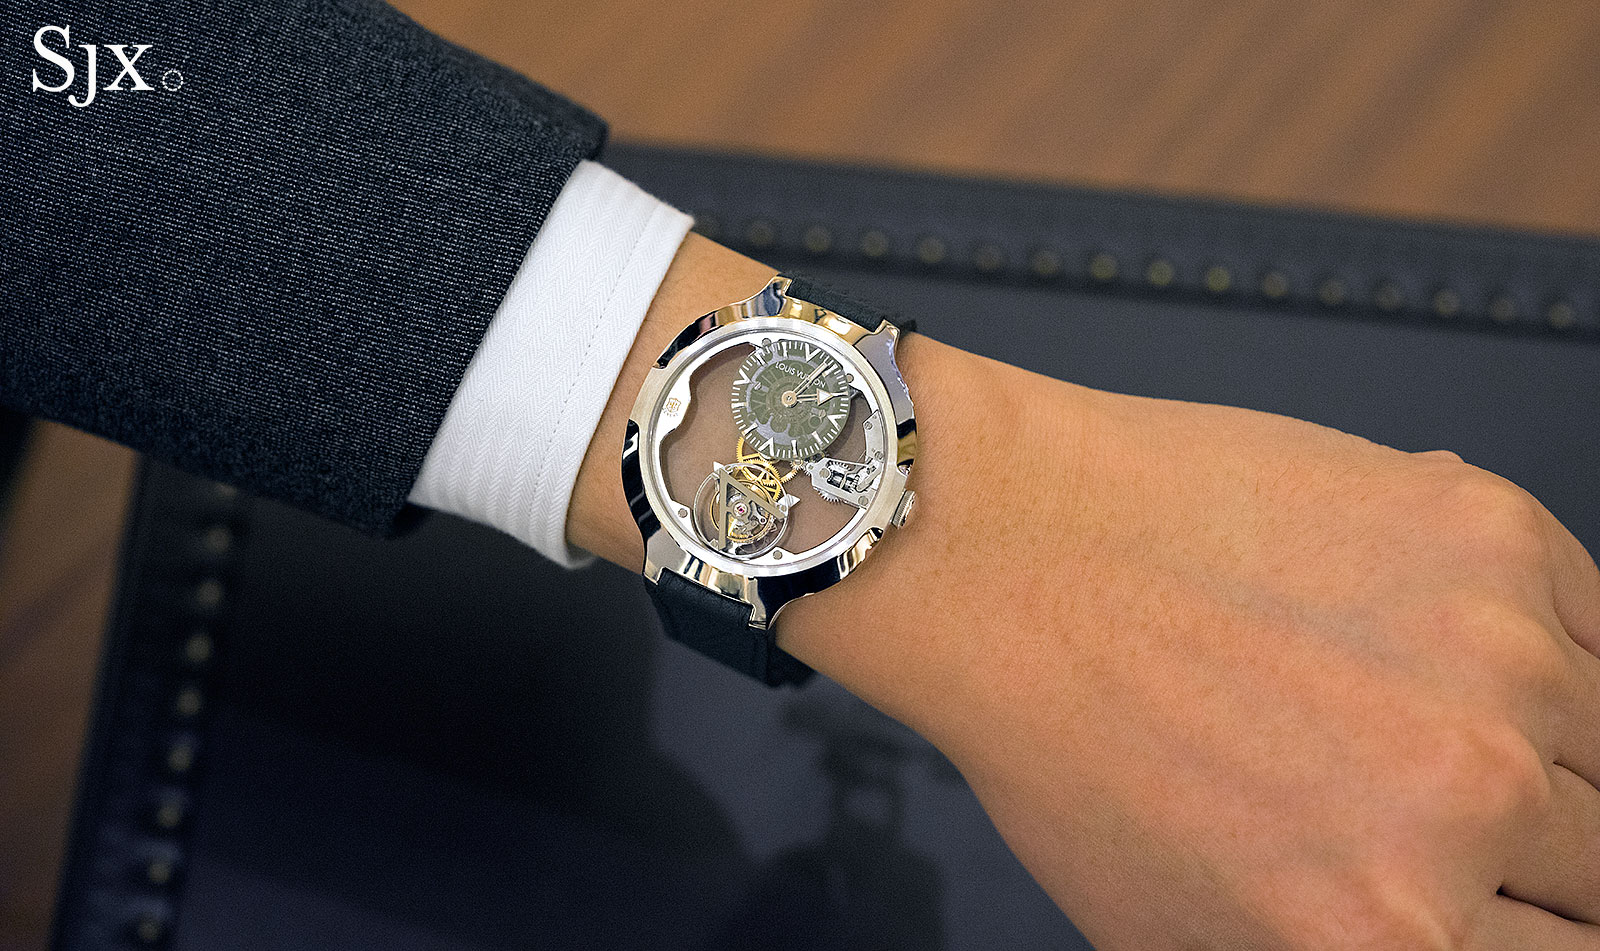 Louis Vuitton Flying Tourbillon Poinçon de Genève 10